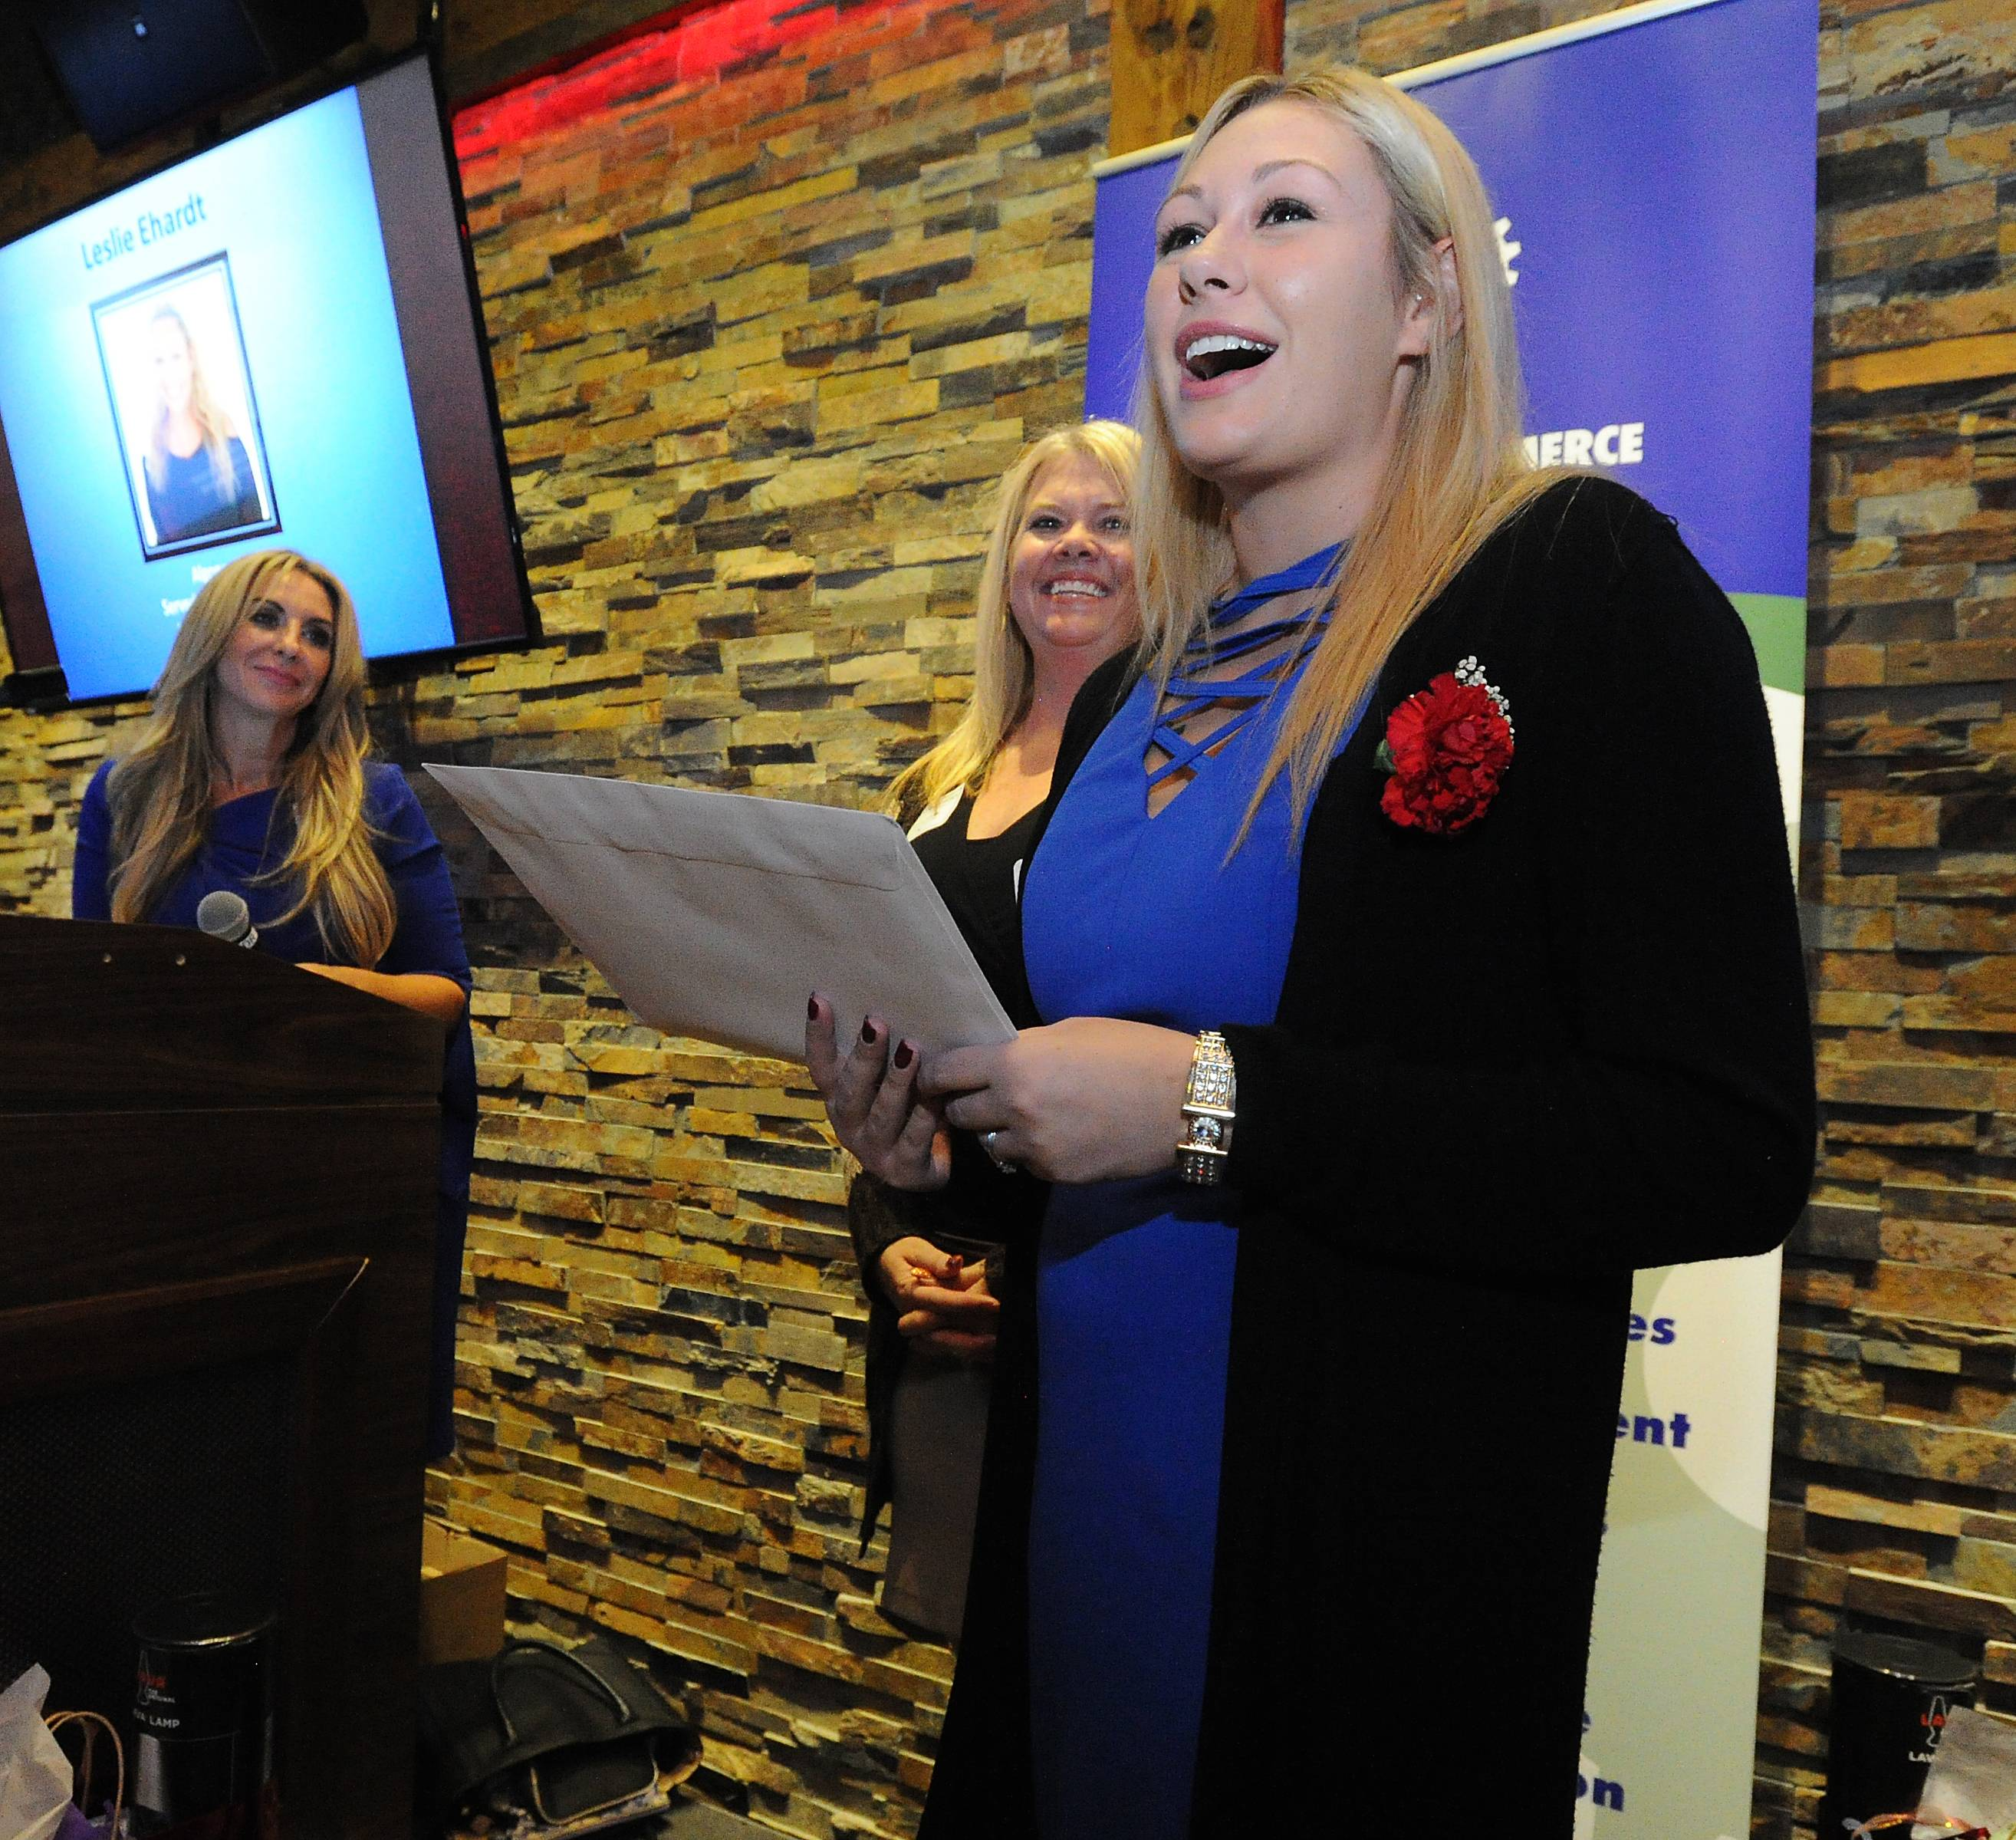 Leslie Ehardt, 23, of Algonquin, who was in the Marines, was honored at the Des Plaines Chamber of Commerce Veterans ceremony in Rosemont Thursday.